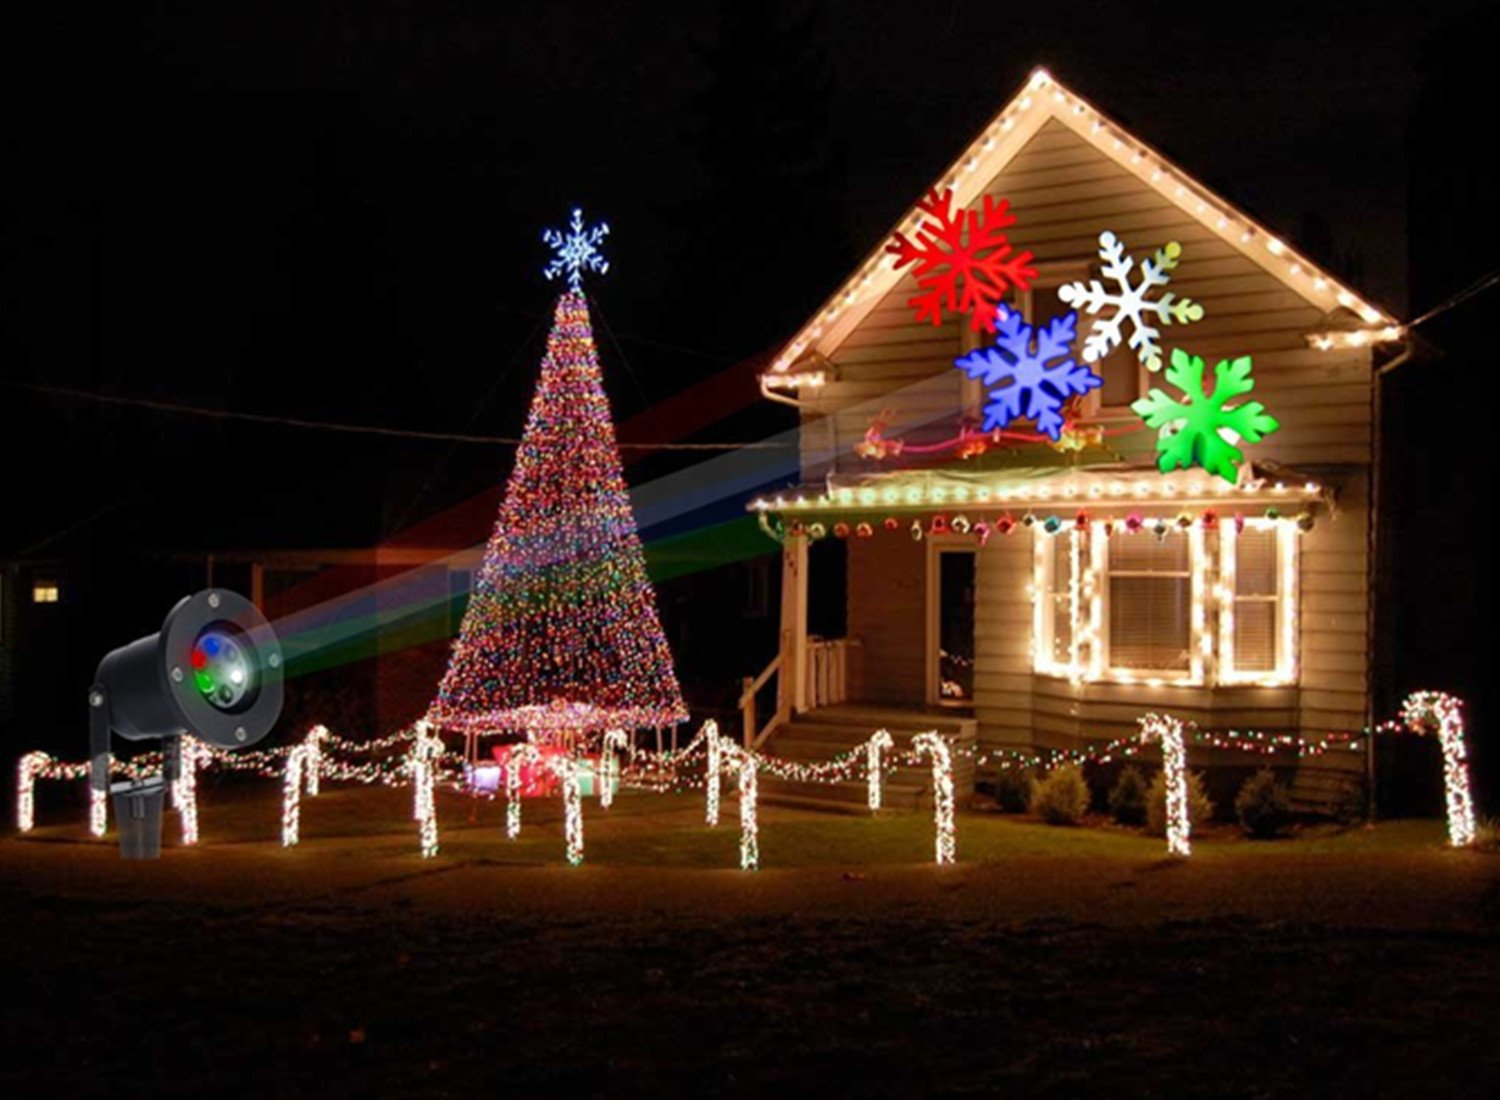 ABCDOK Laser Christmas Lights-Outdoor Holiday Light, Garden ...